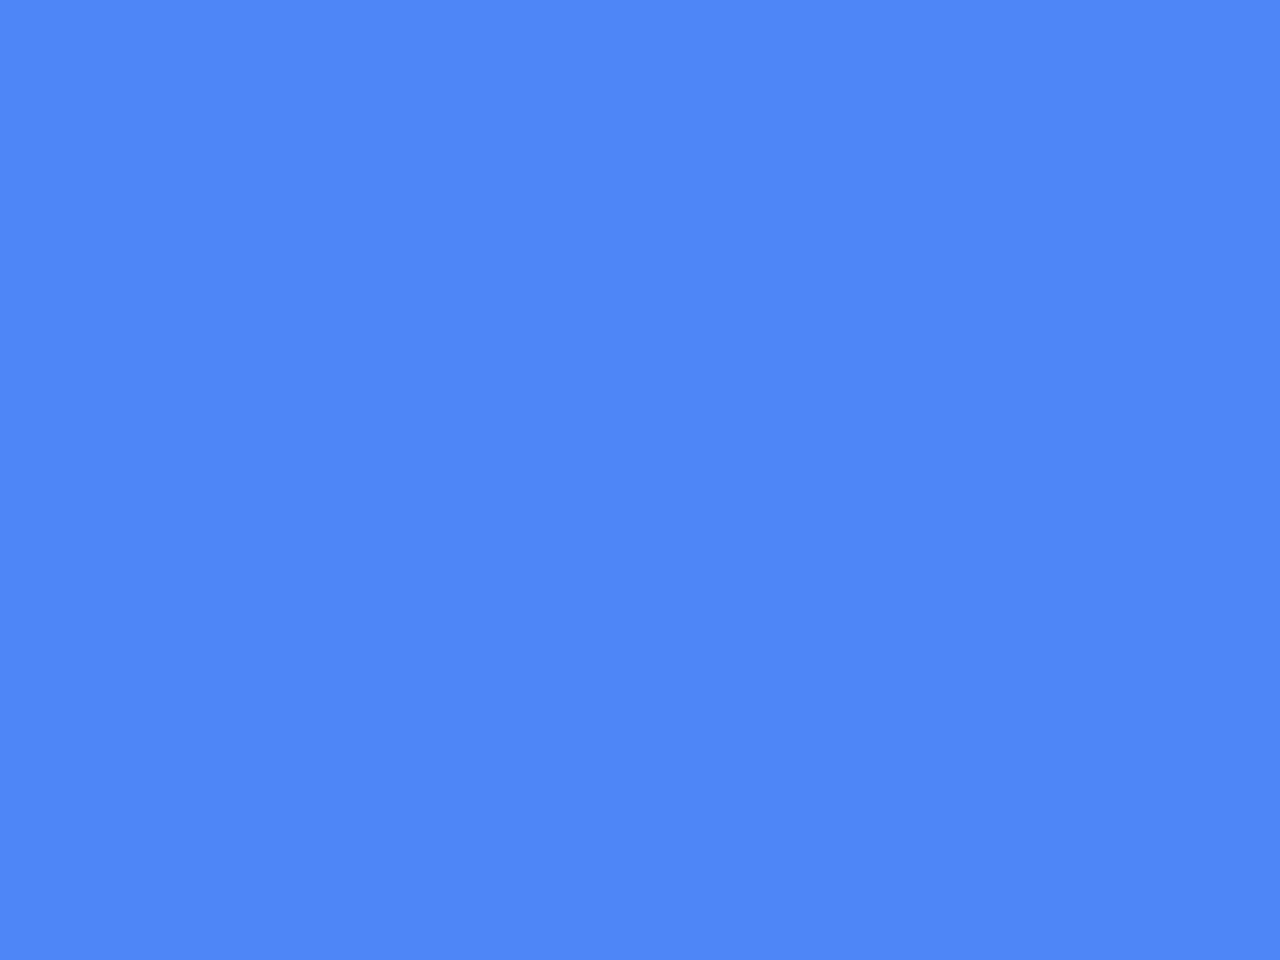 1280x960 Blueberry Solid Color Background